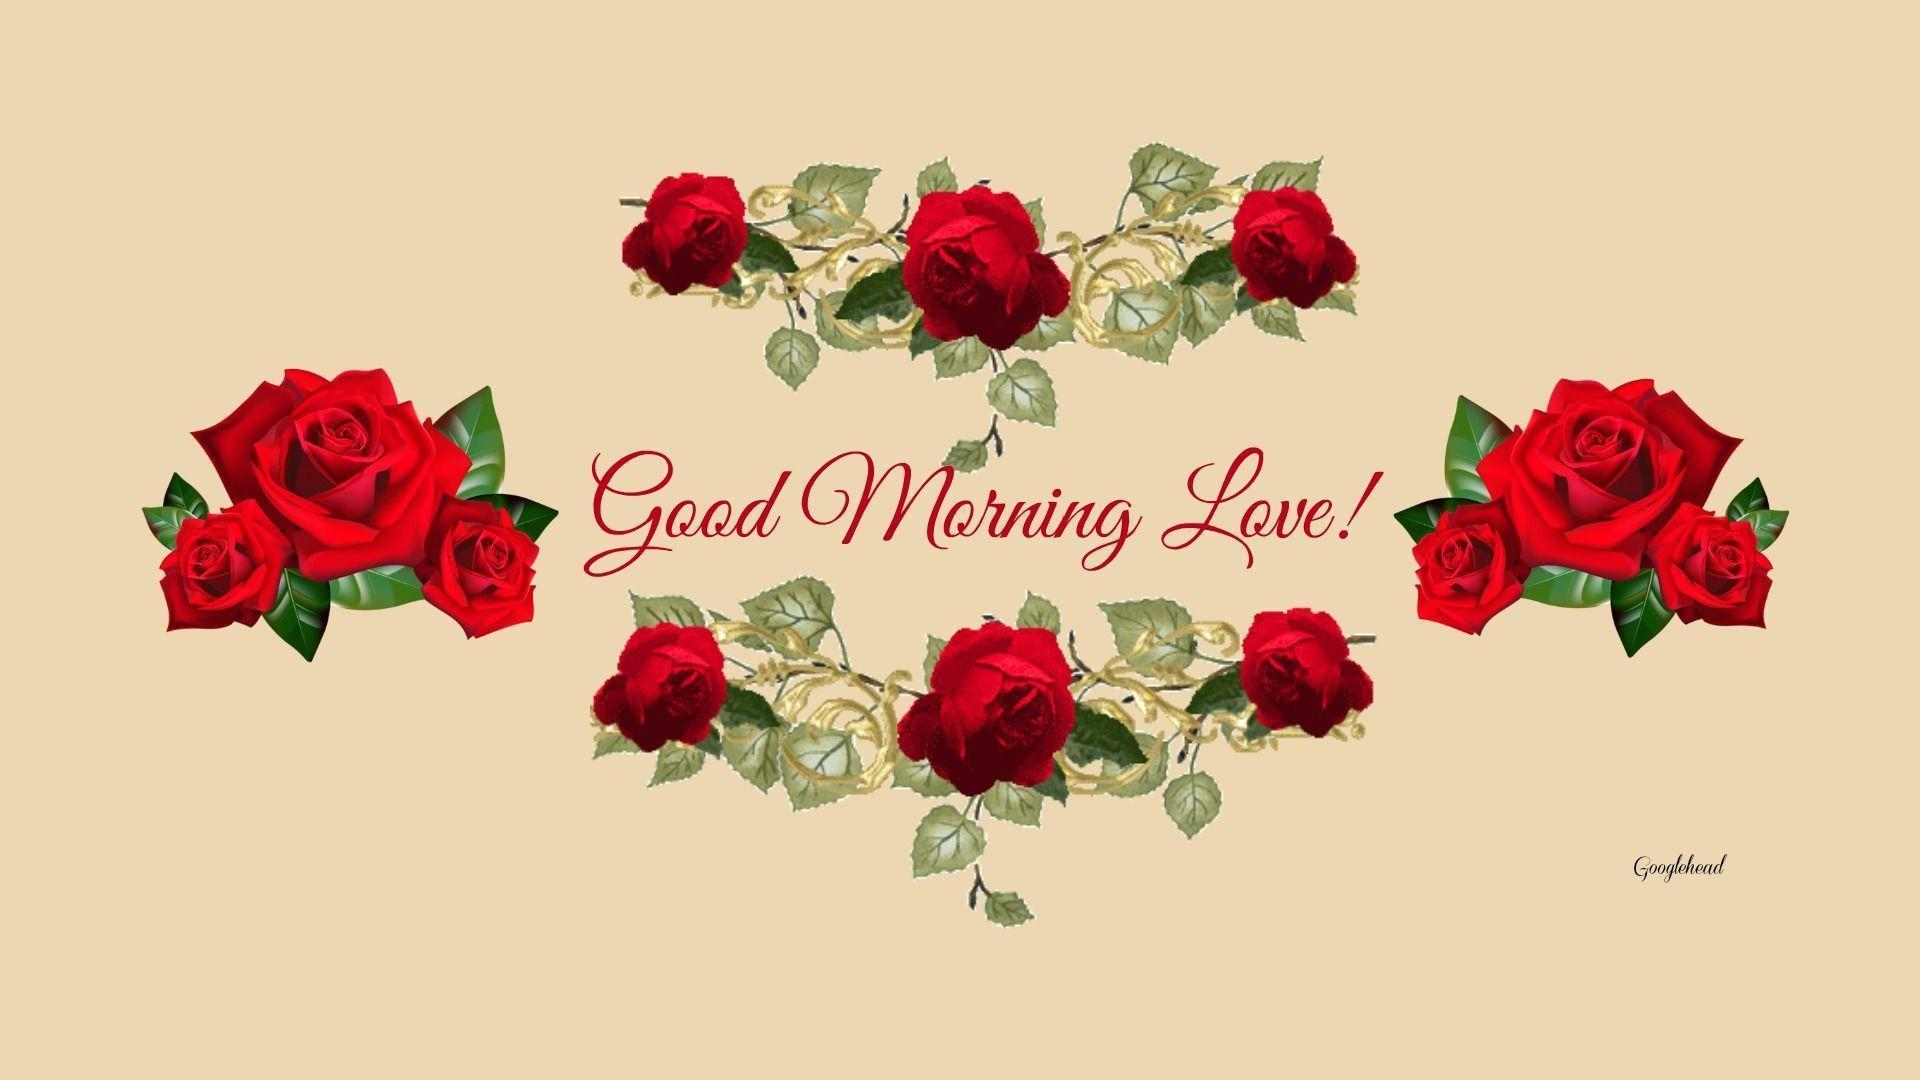 Wallpapers Good Morning Love - Wallpaper cave